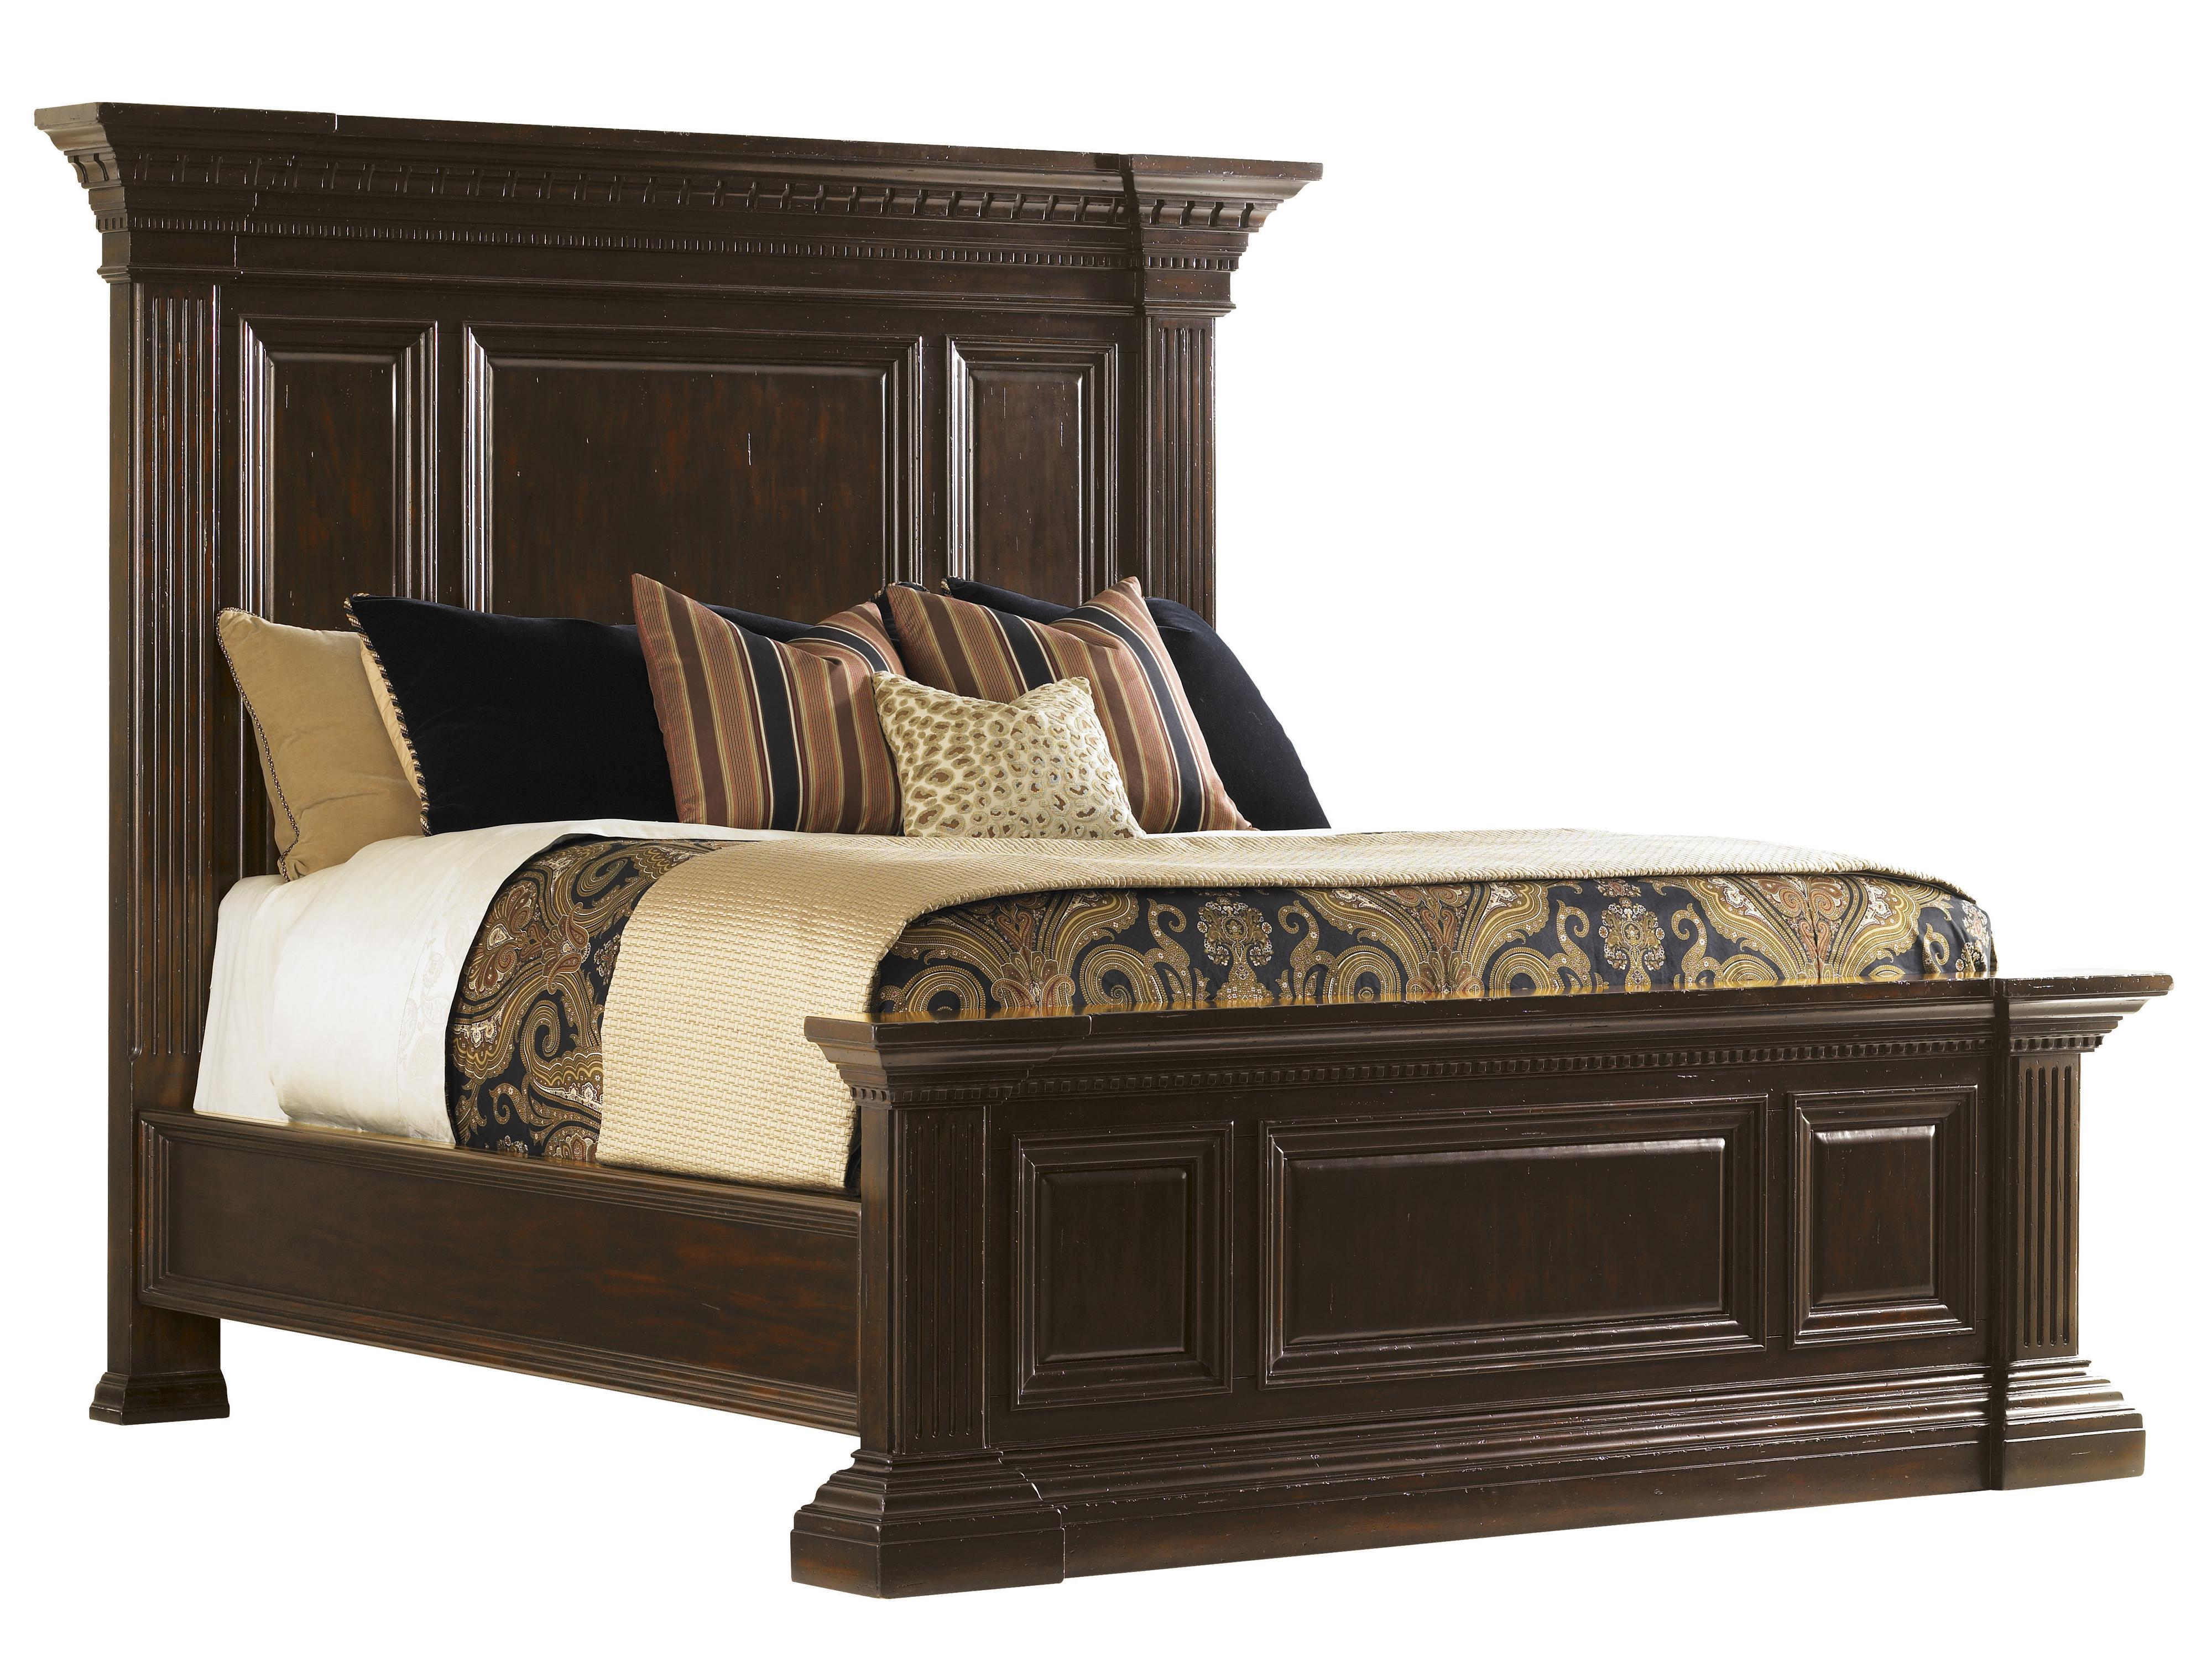 Tommy Bahama Home Island Traditions Queen Sutton Place Bed - Item Number: 548-143C